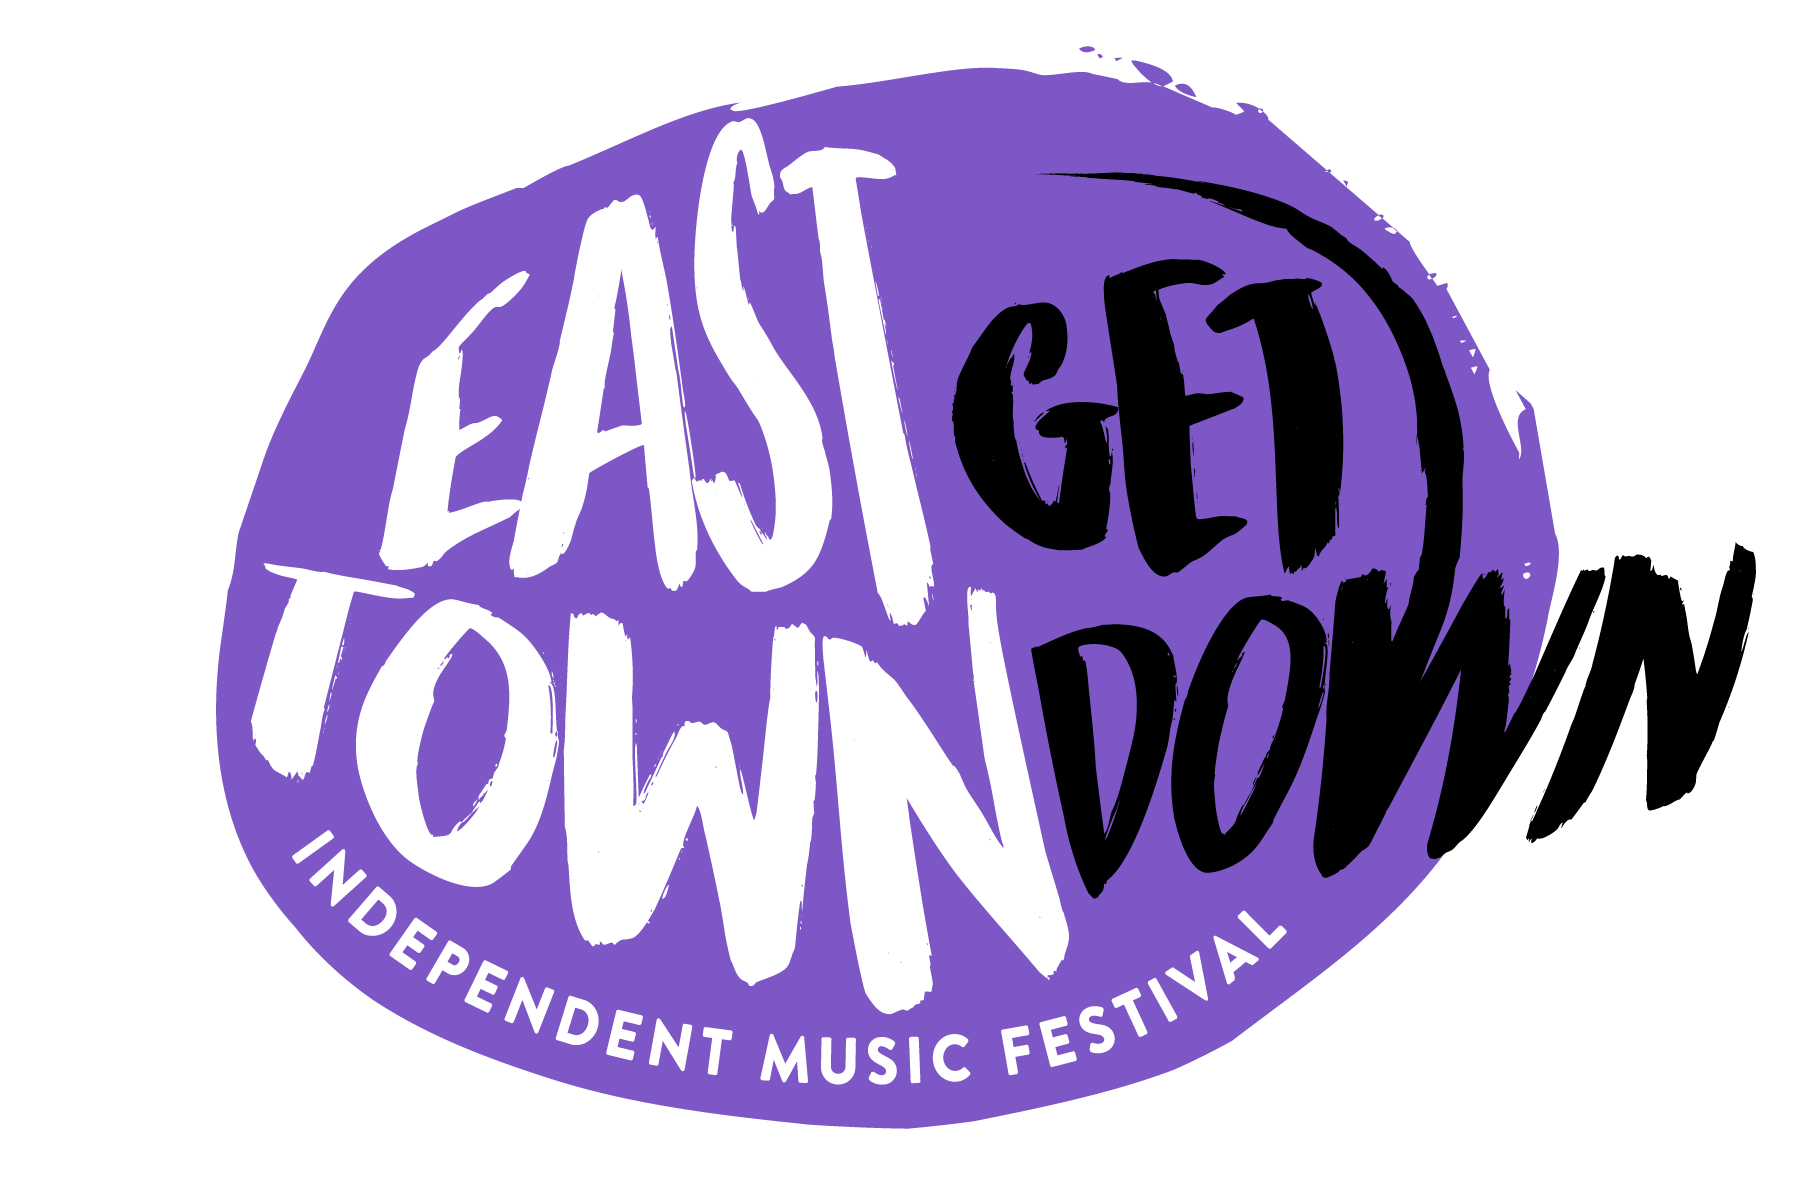 A. East Town Get Down Logo - Purple